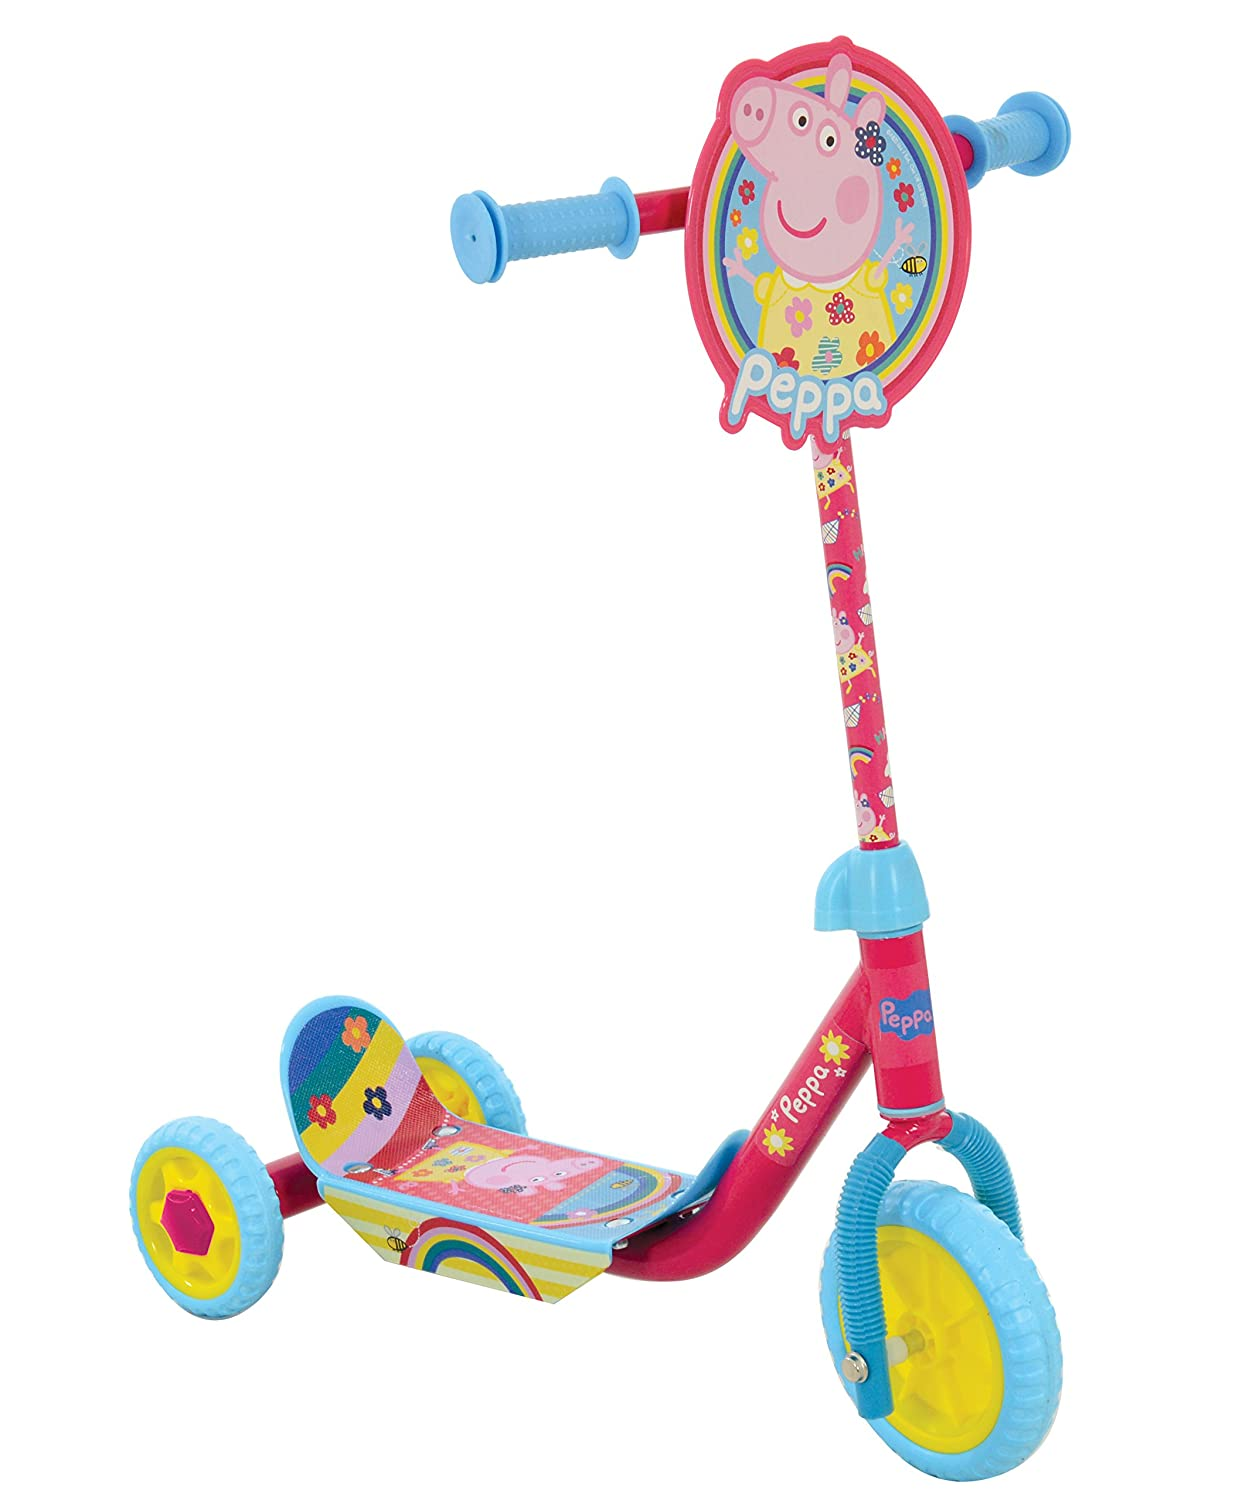 Peppa Pig M14266 My First Tri - Patinete: Amazon.es ...